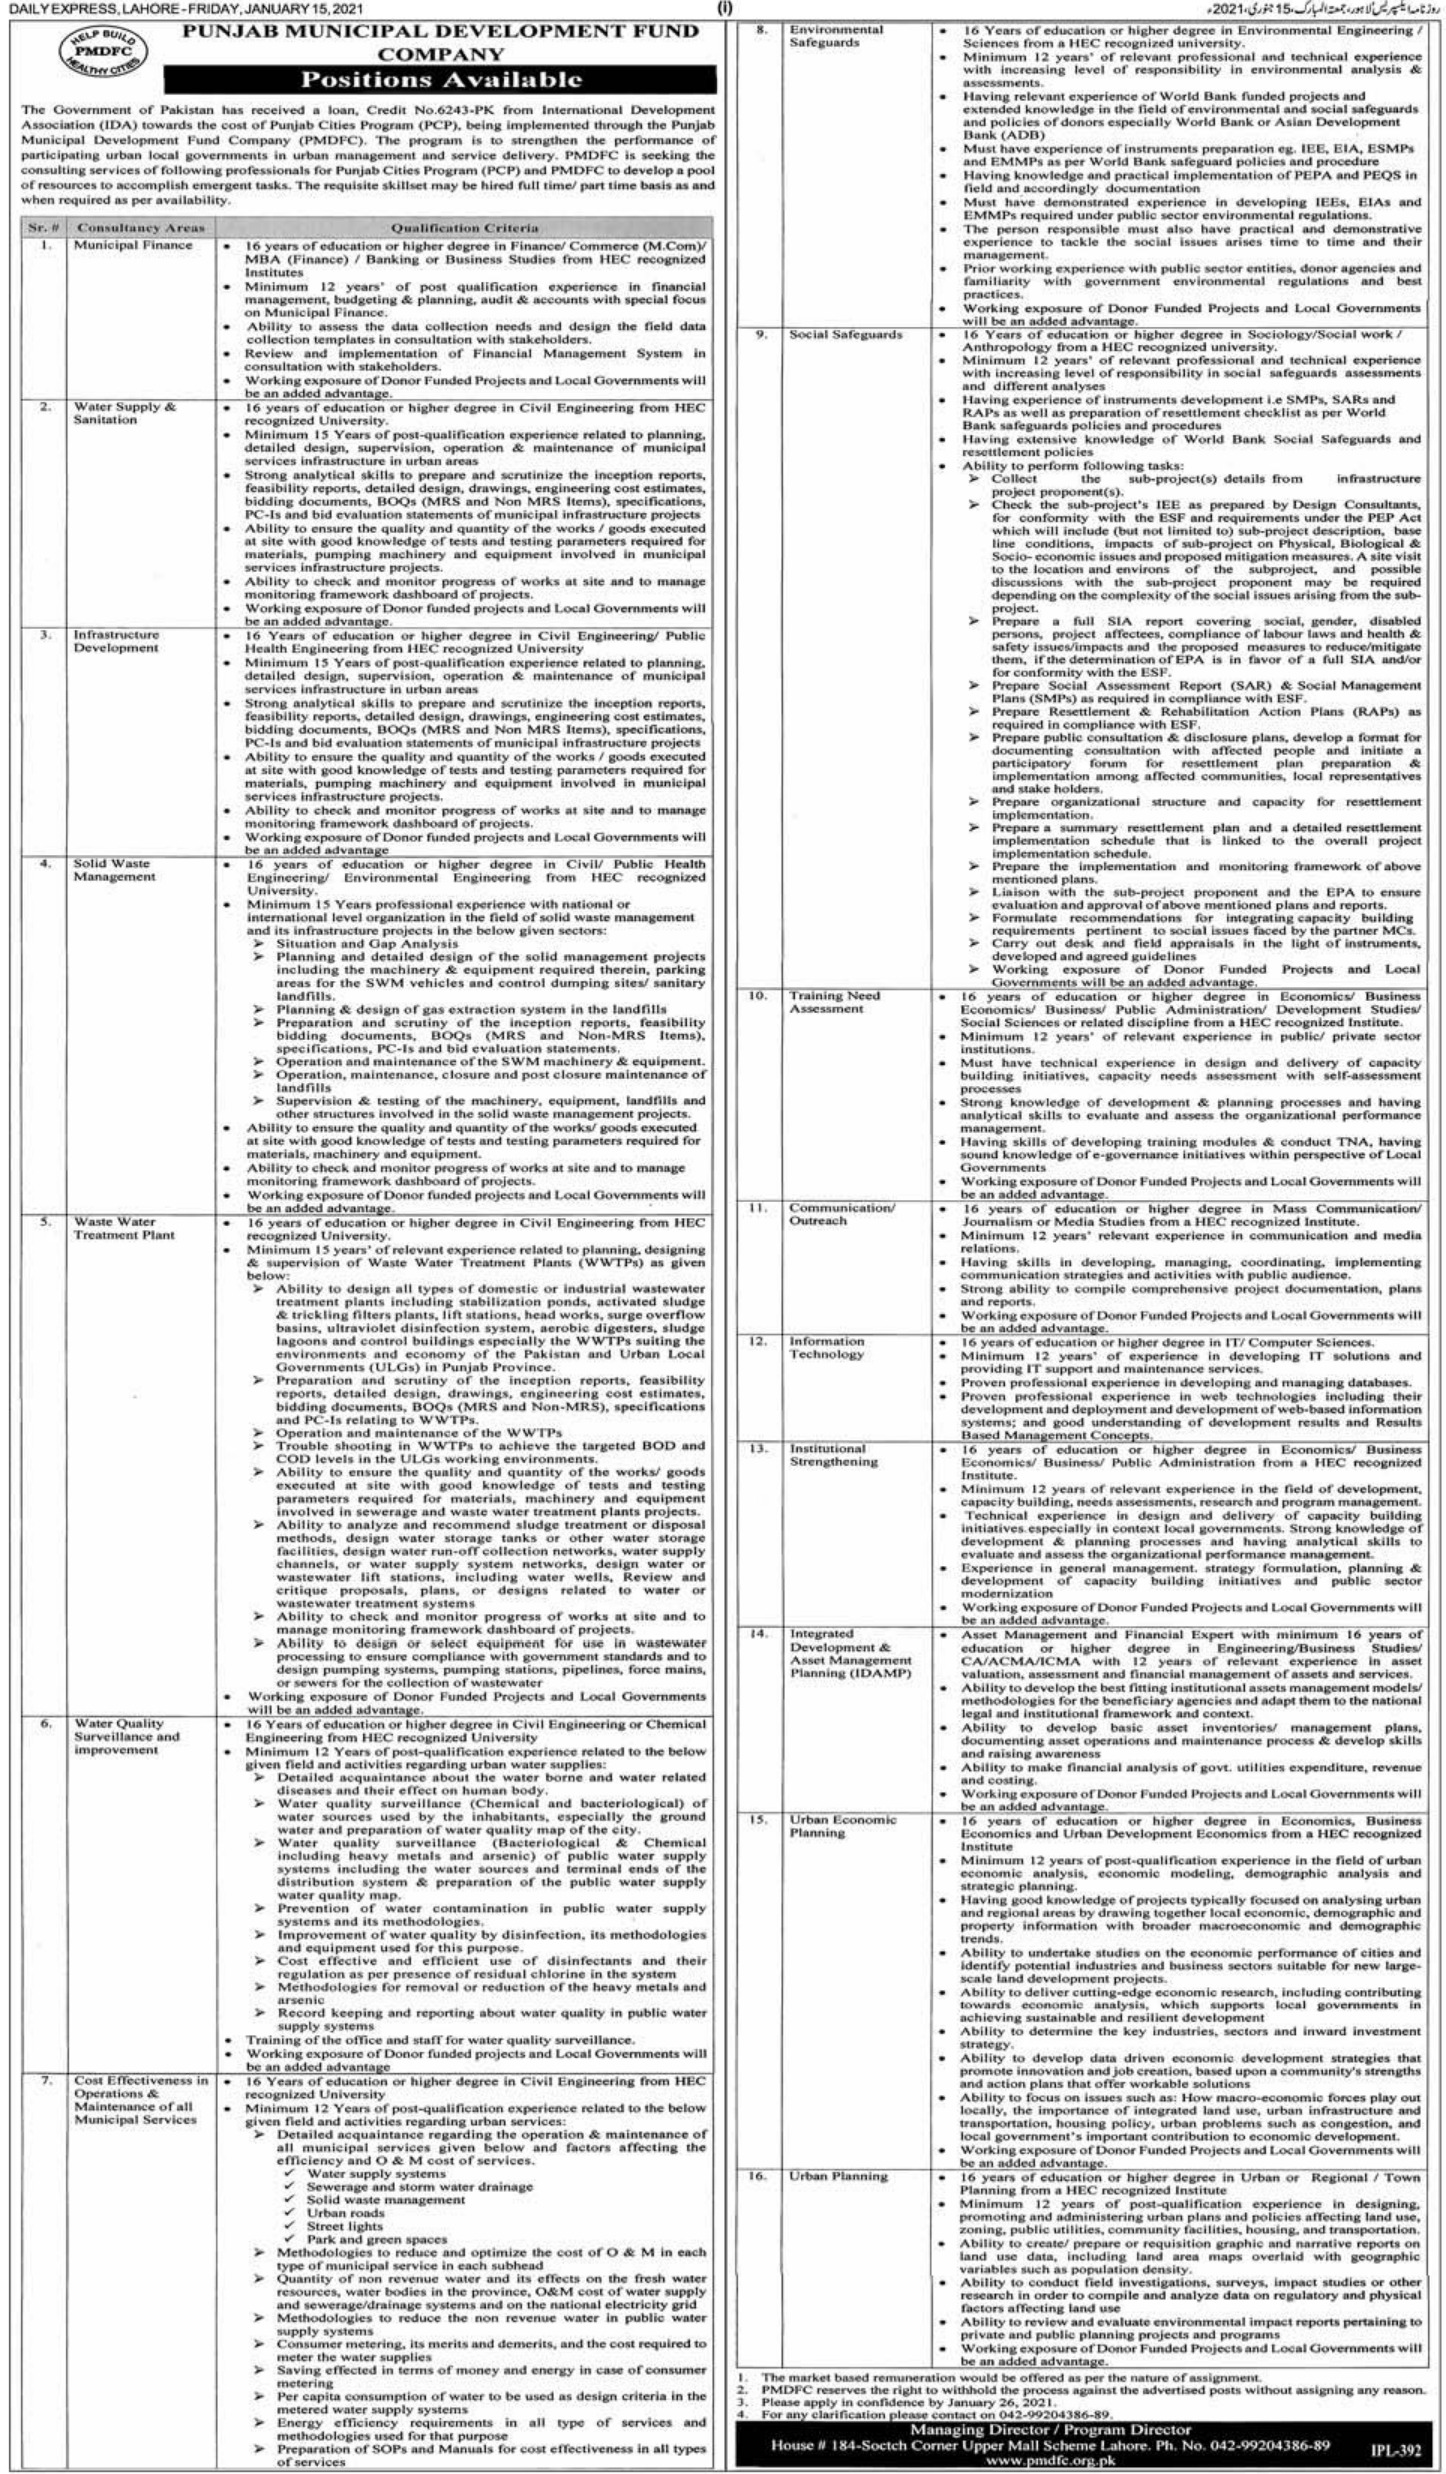 Punjab Municipal Development Fund Company PMDFC Jobs January 2021